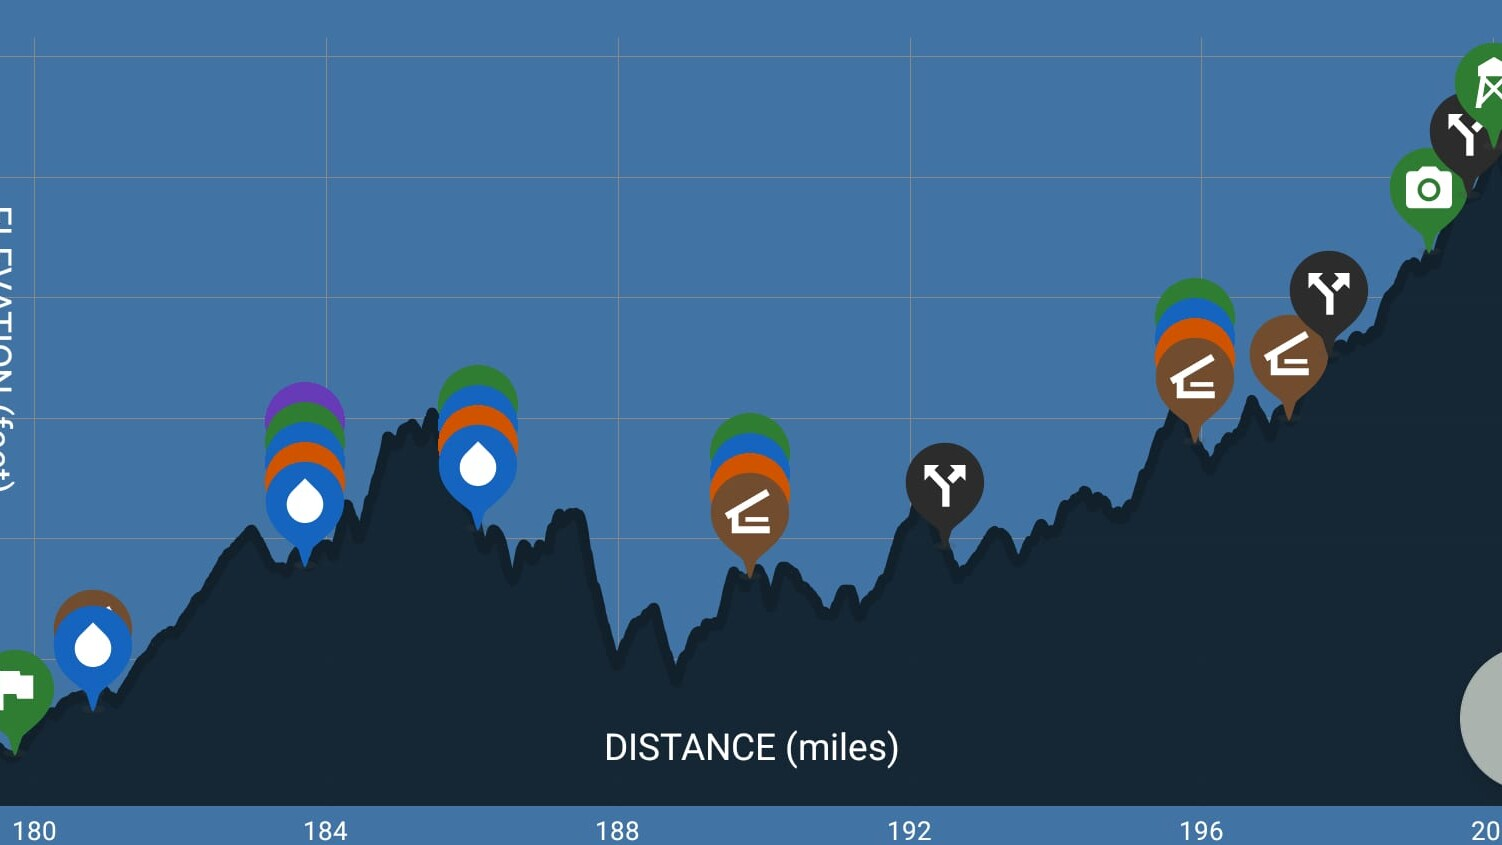 A screenshot of the appalachian trail elevation profile in the Guthook Guides app.